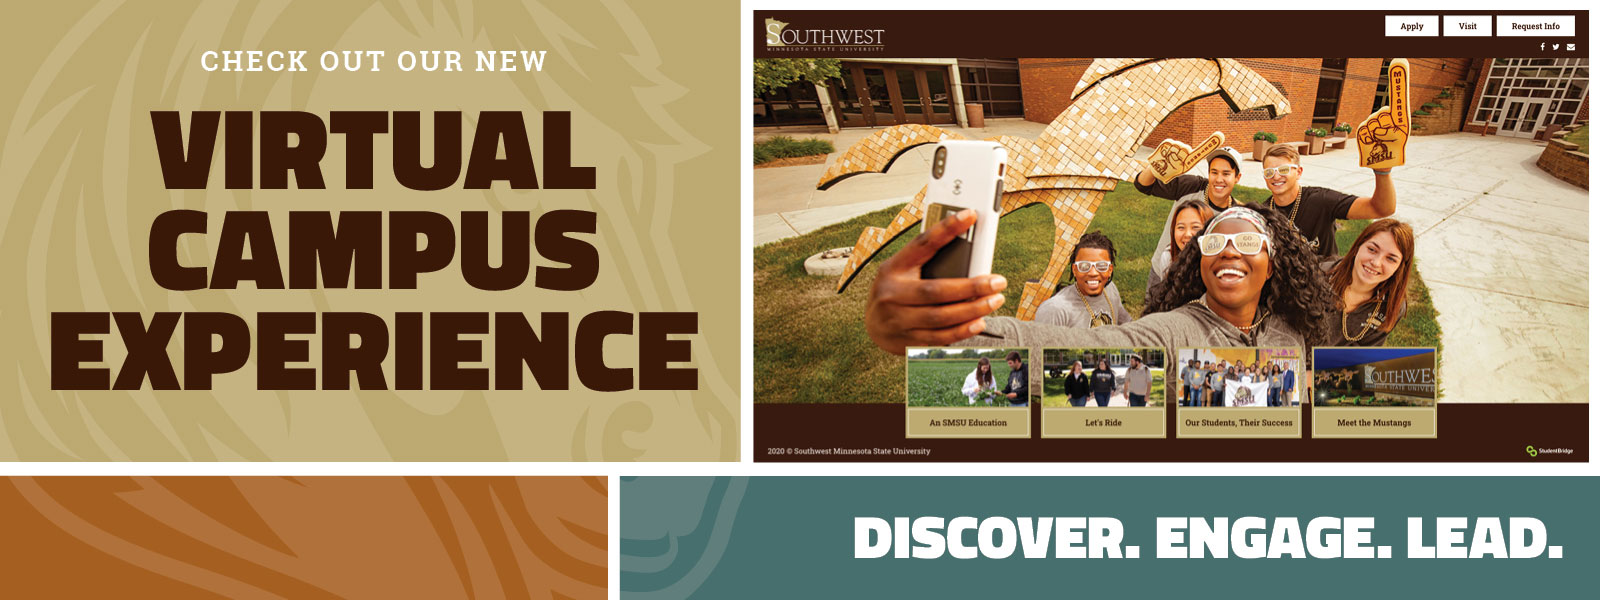 Check out our new Virtual Campus Experience - Discover. Engage. Lead.